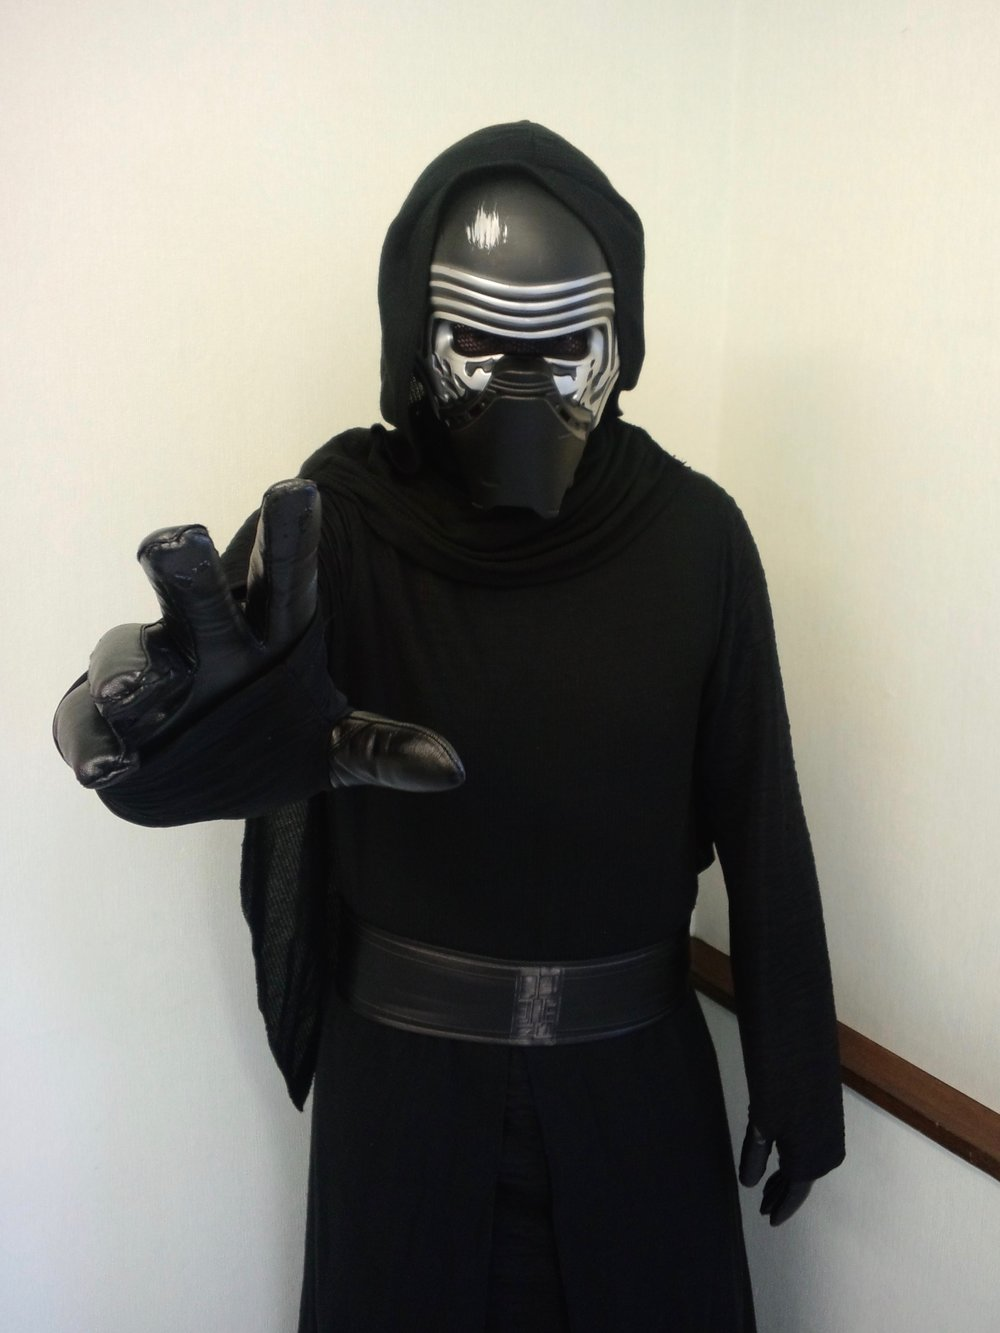 Tokyo cosplayer dressed as Kylo Ren for Halloween 2016.